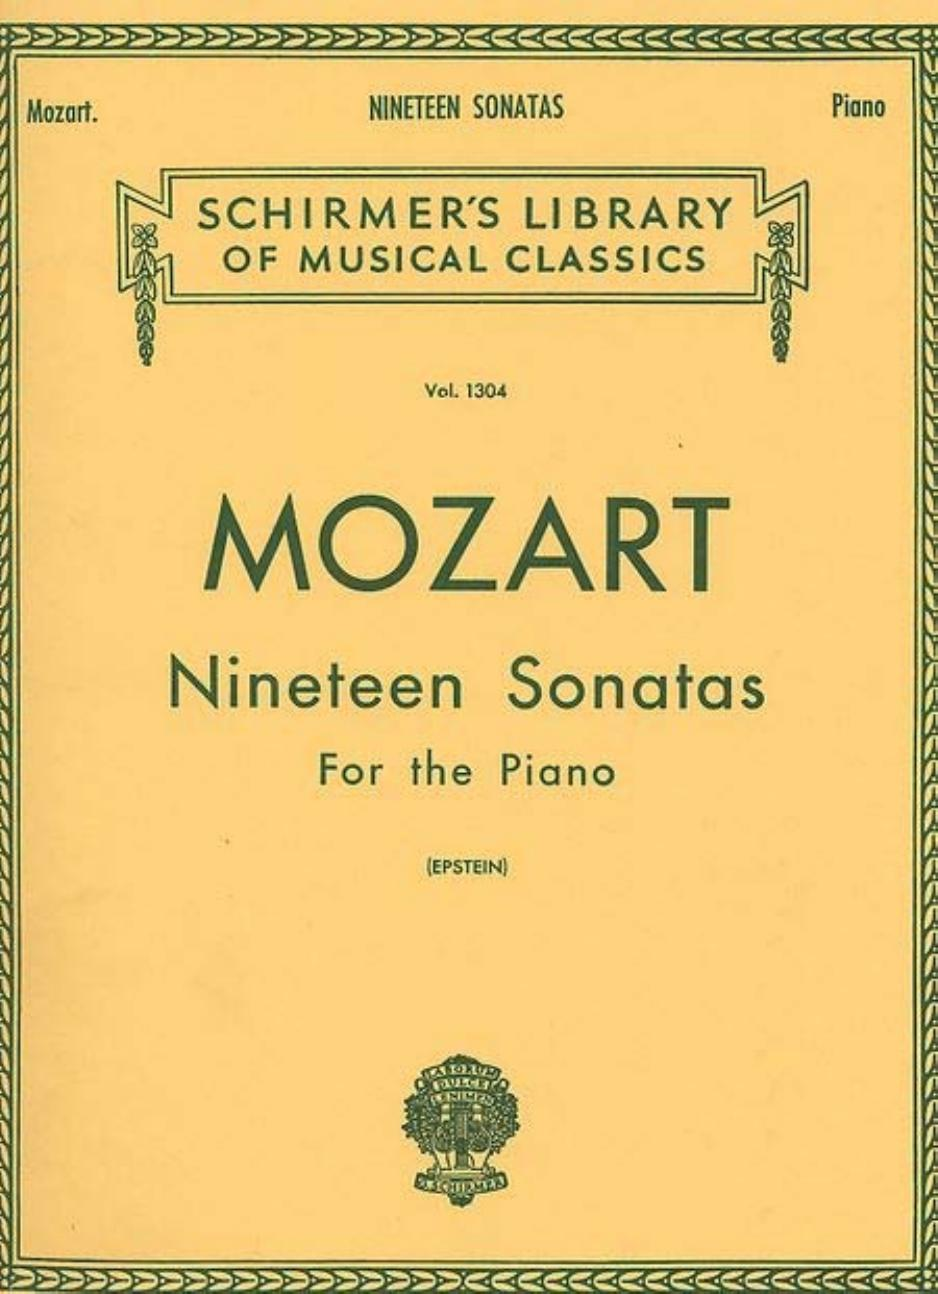 Mozart Piano Sonata sheet music pdf